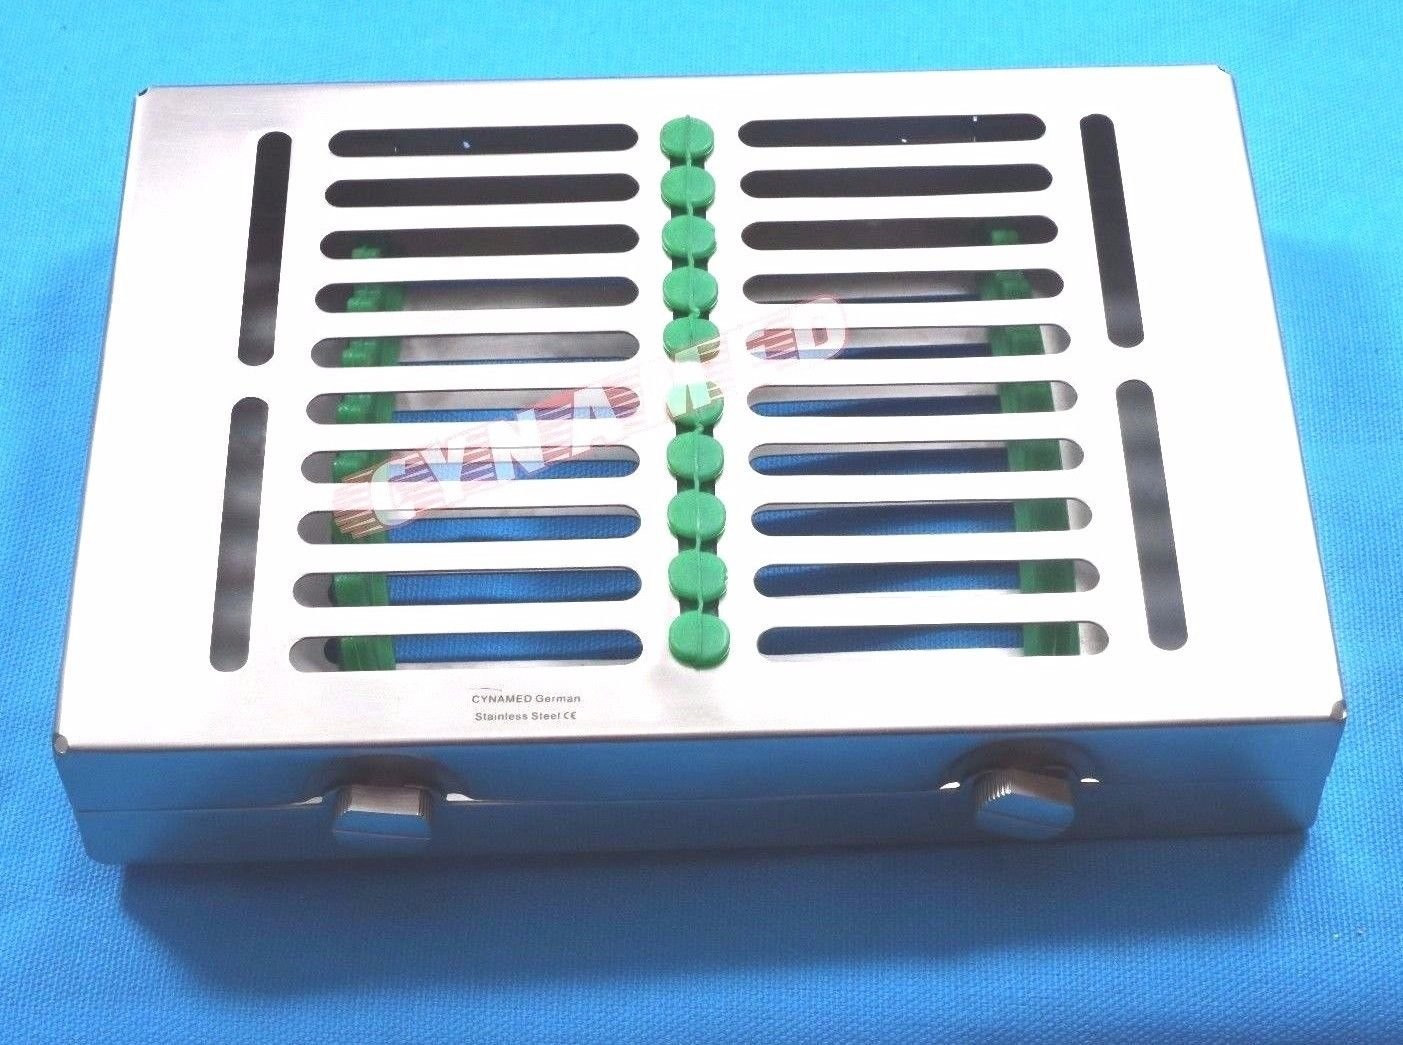 PREMIUM GERMAN STAINLESS 1 HEAVY DUTY DENTAL AUTOCLAVE STERILIZATION CASSETTE BOX TRAY FOR 10 INSTRUMENT-A+QUALITY DOUBLE BUTTON TYPE DETACHABLE ( CYNAMED BRAND )